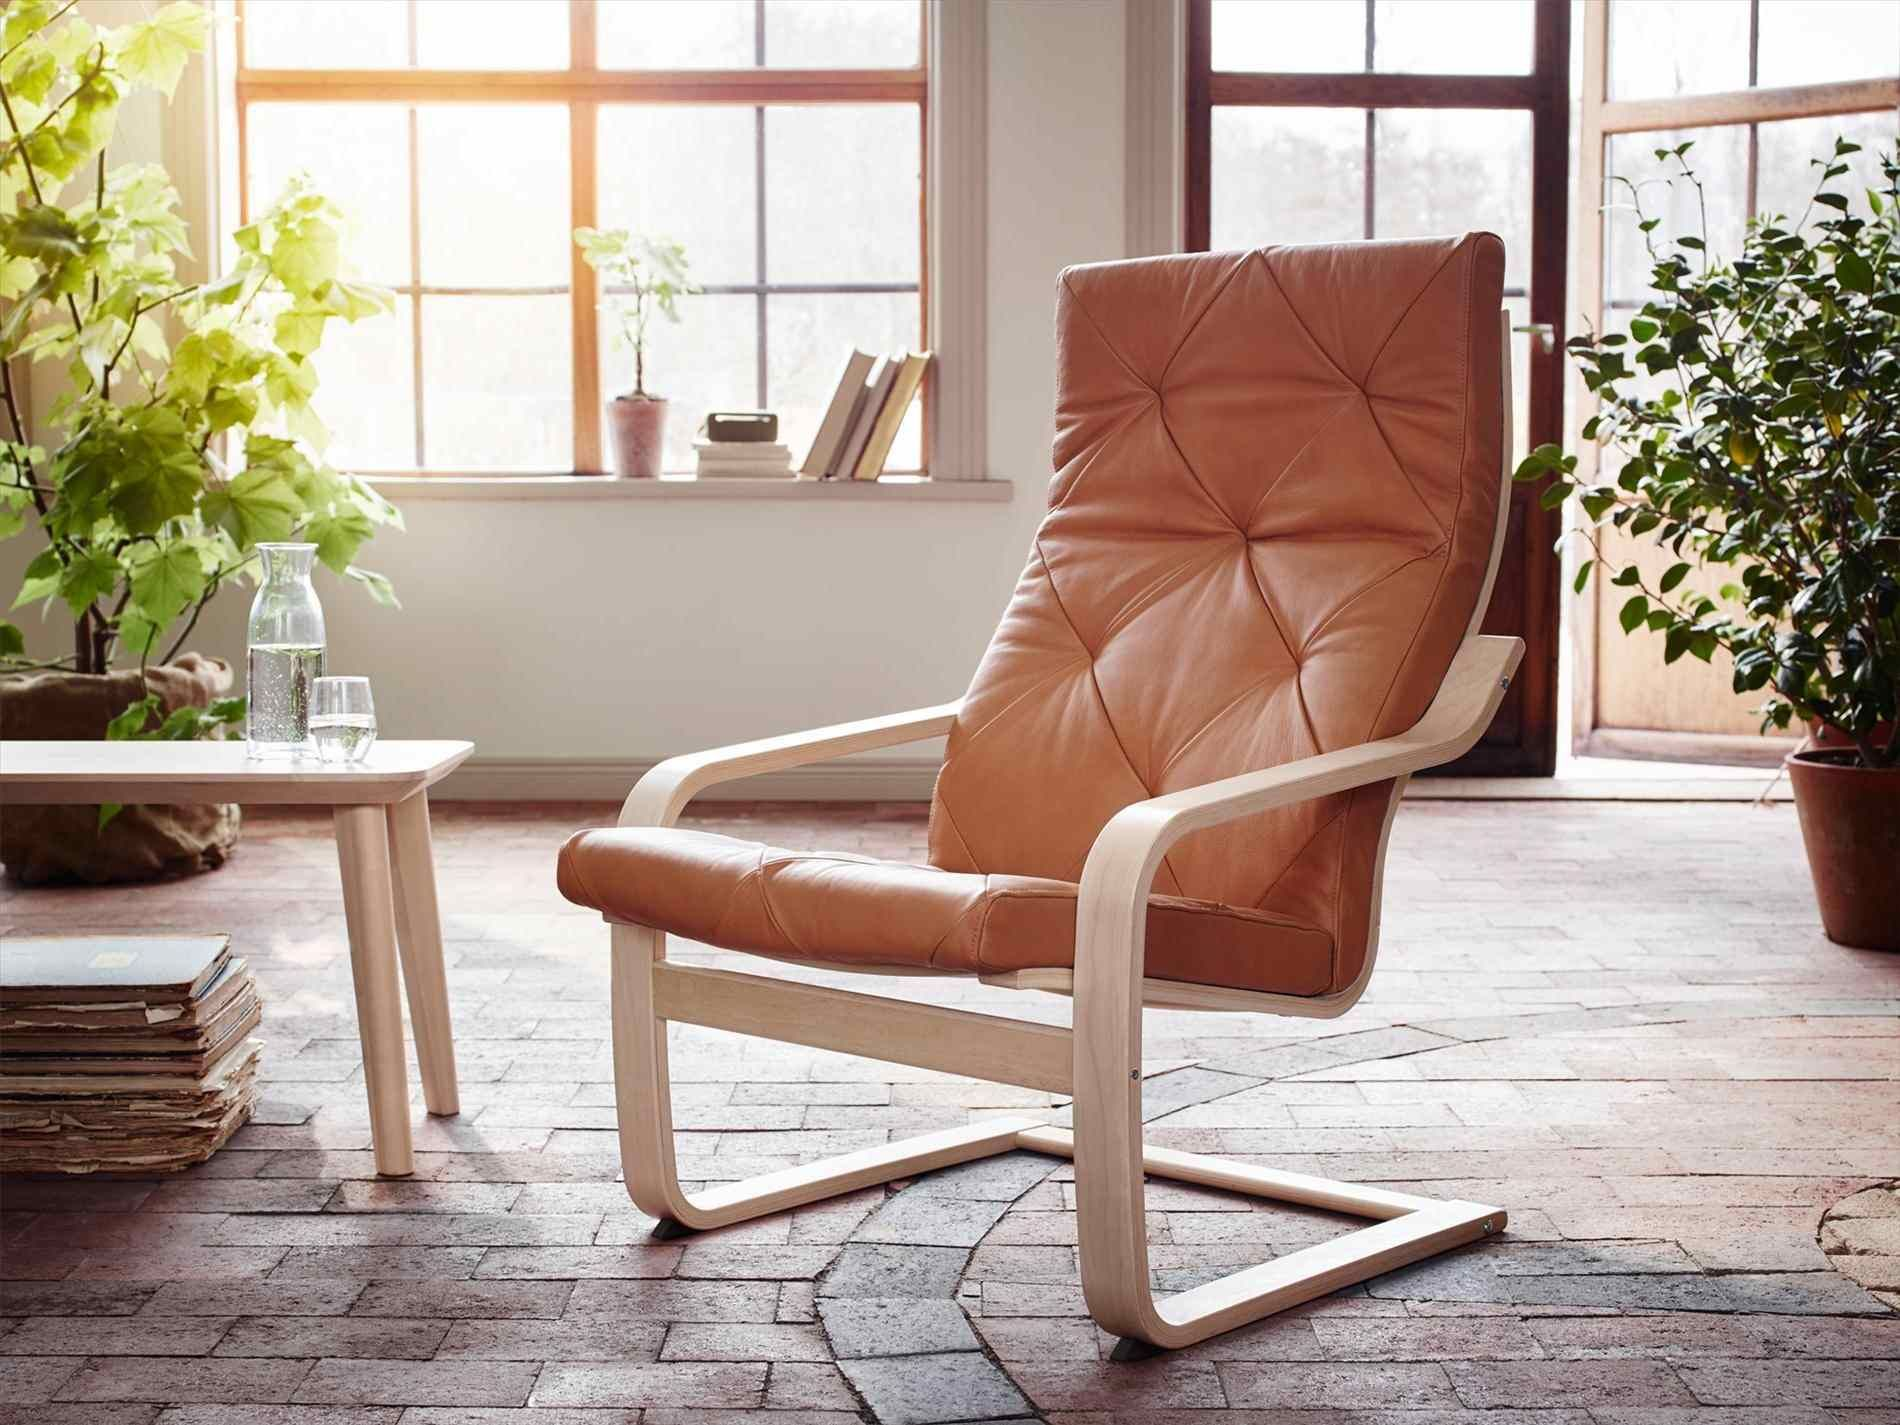 Pin By Adria Verdoorn On Furniture Inspo Ikea Poang Chair Ikea Chair Comfy Chairs